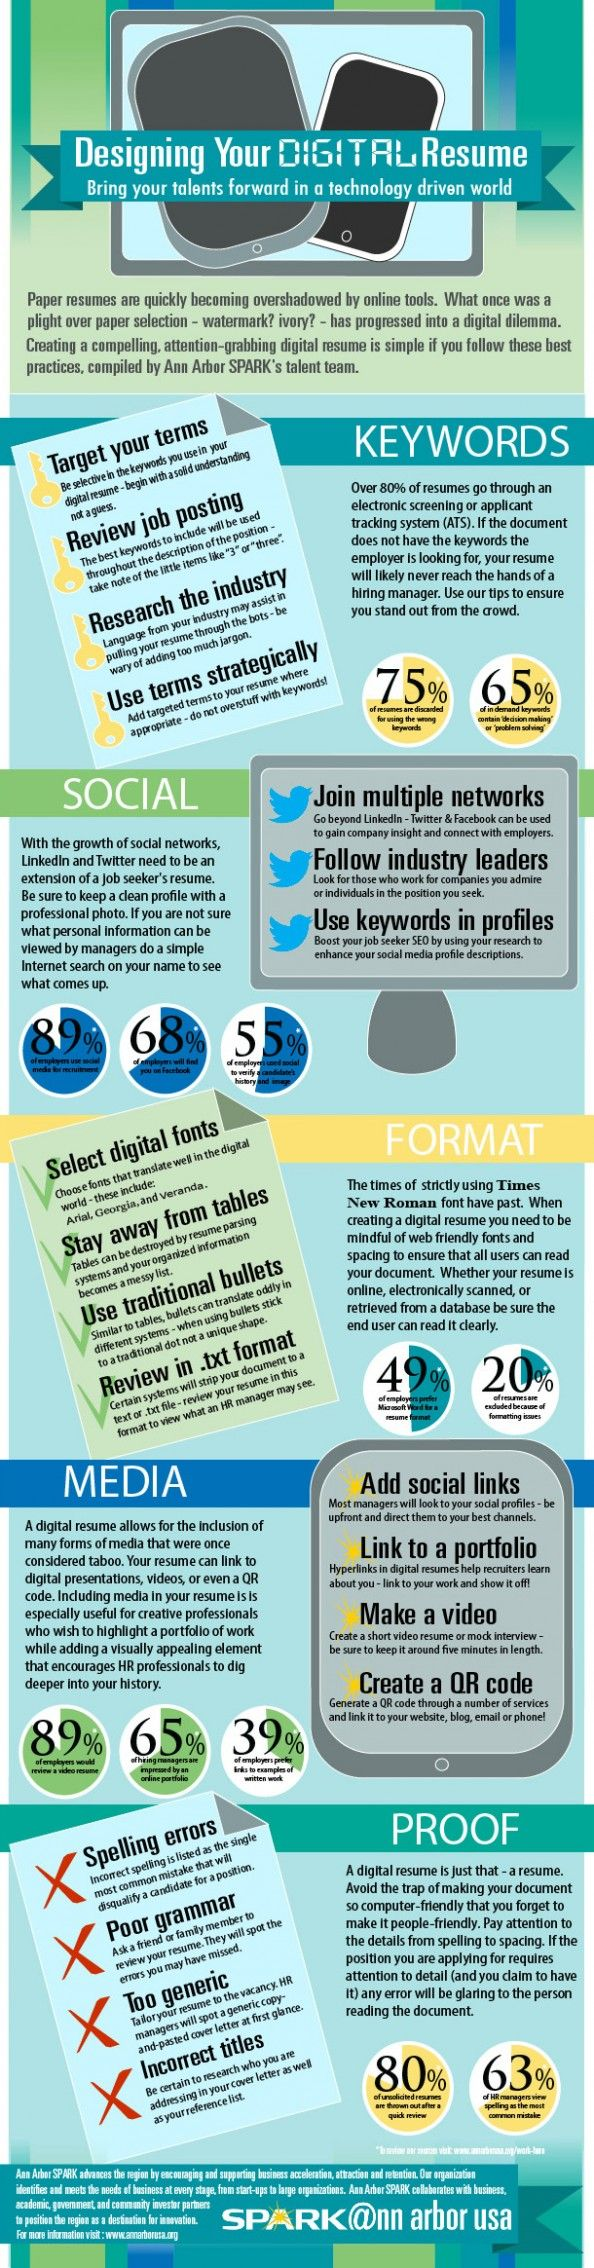 26 best images about great infographic resumes on pinterest